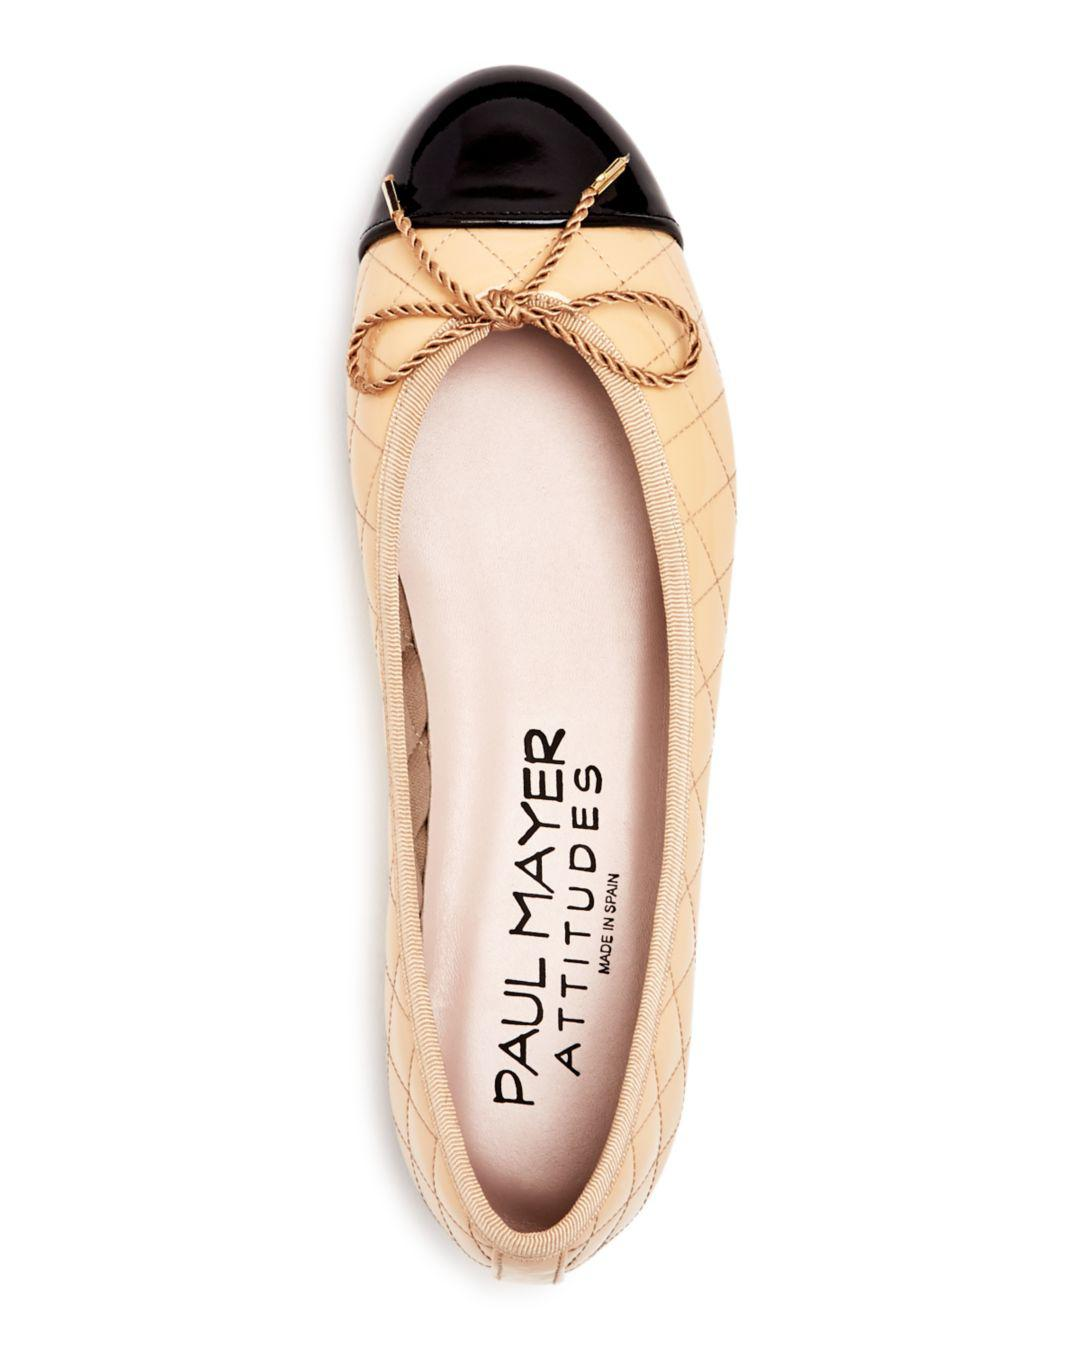 5e557e379 Paul Mayer Women's Best Quilted Leather Cap Toe Ballet Flats in ...